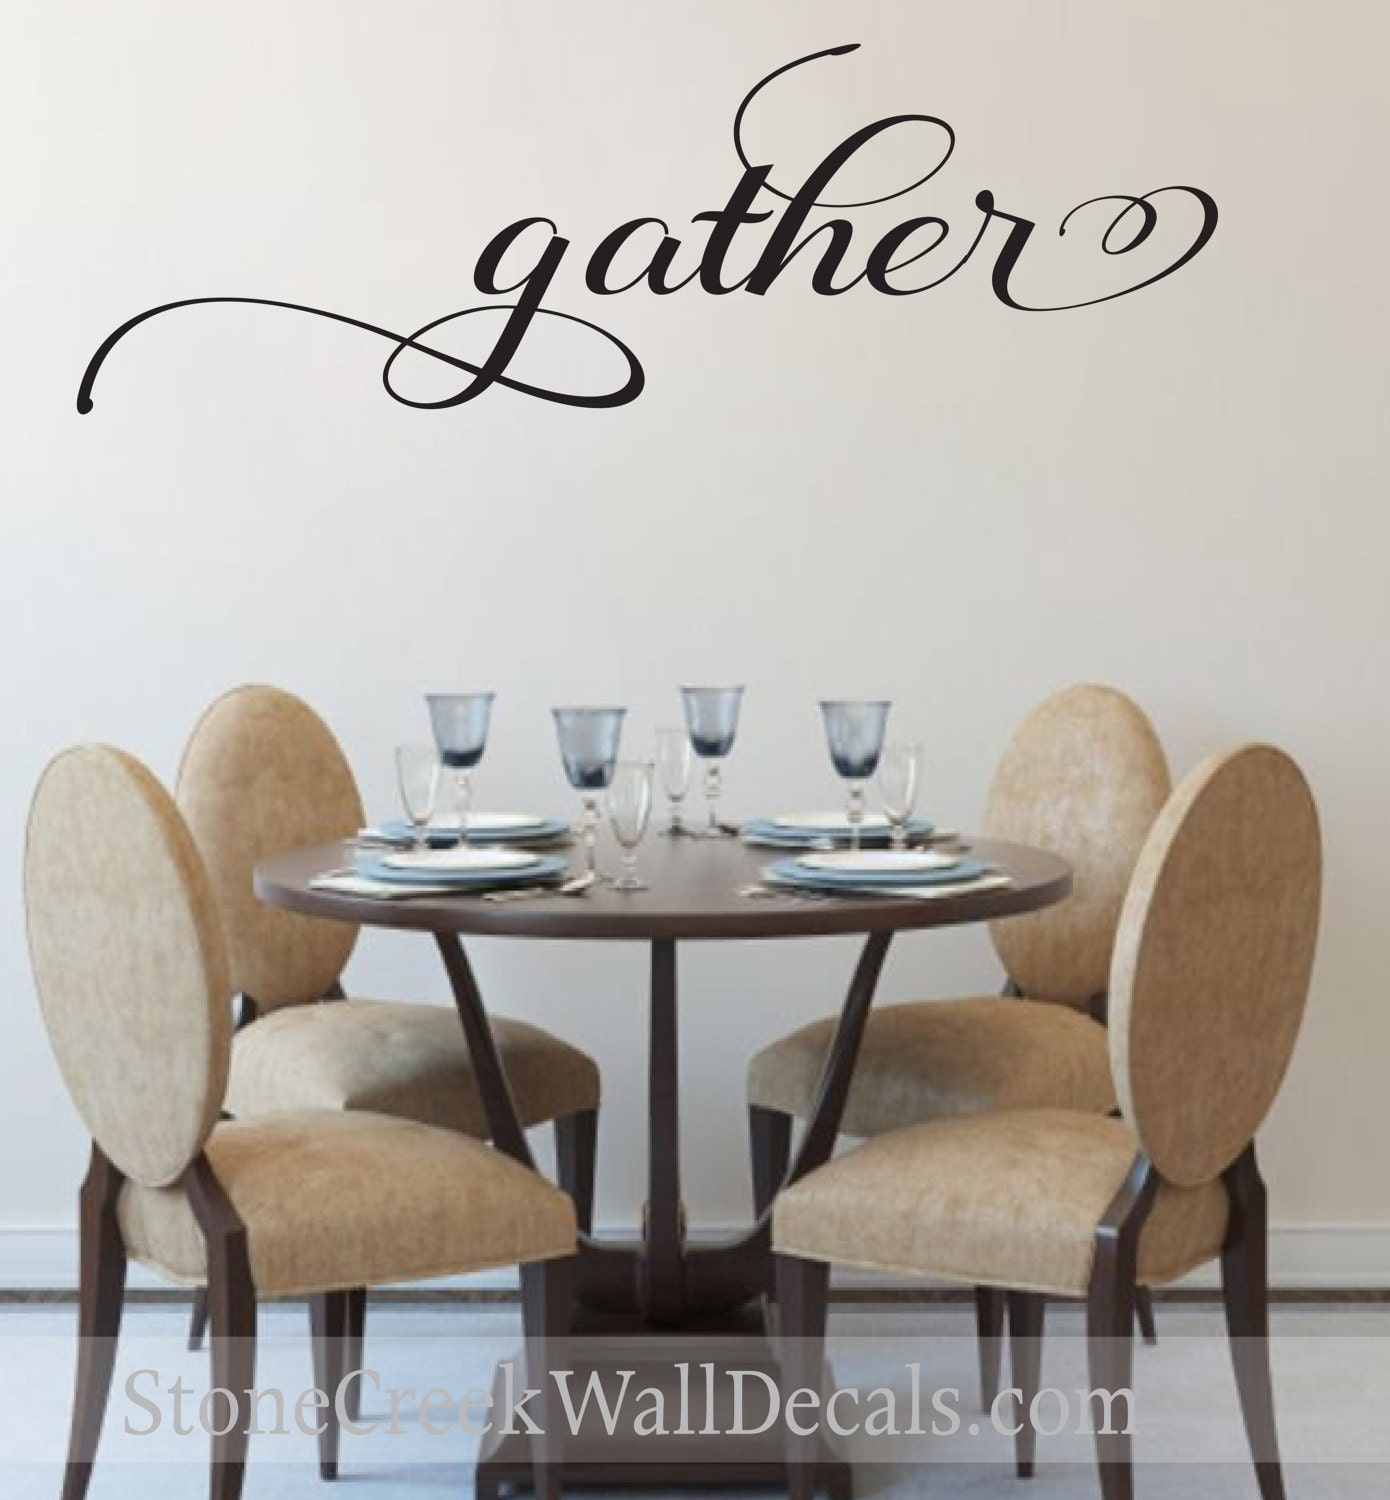 Gather Wall Decal Living Room Dining Room Family Decor Gather Wall ...